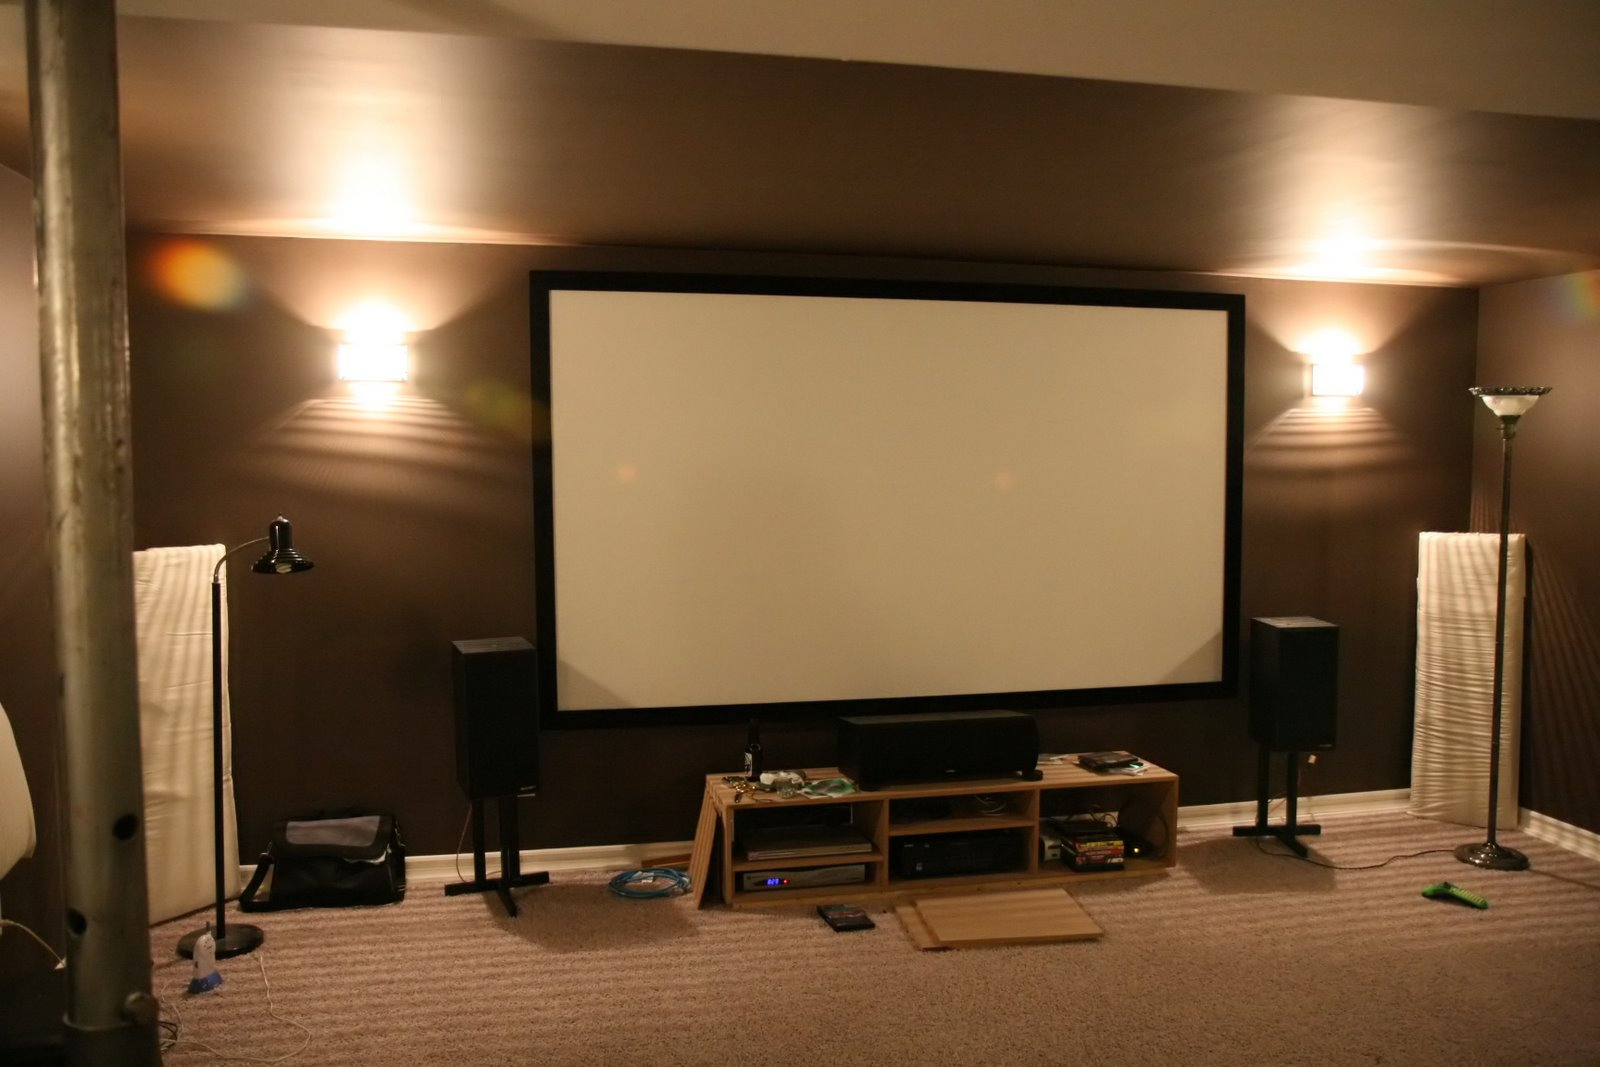 Home Theater Projector Systems